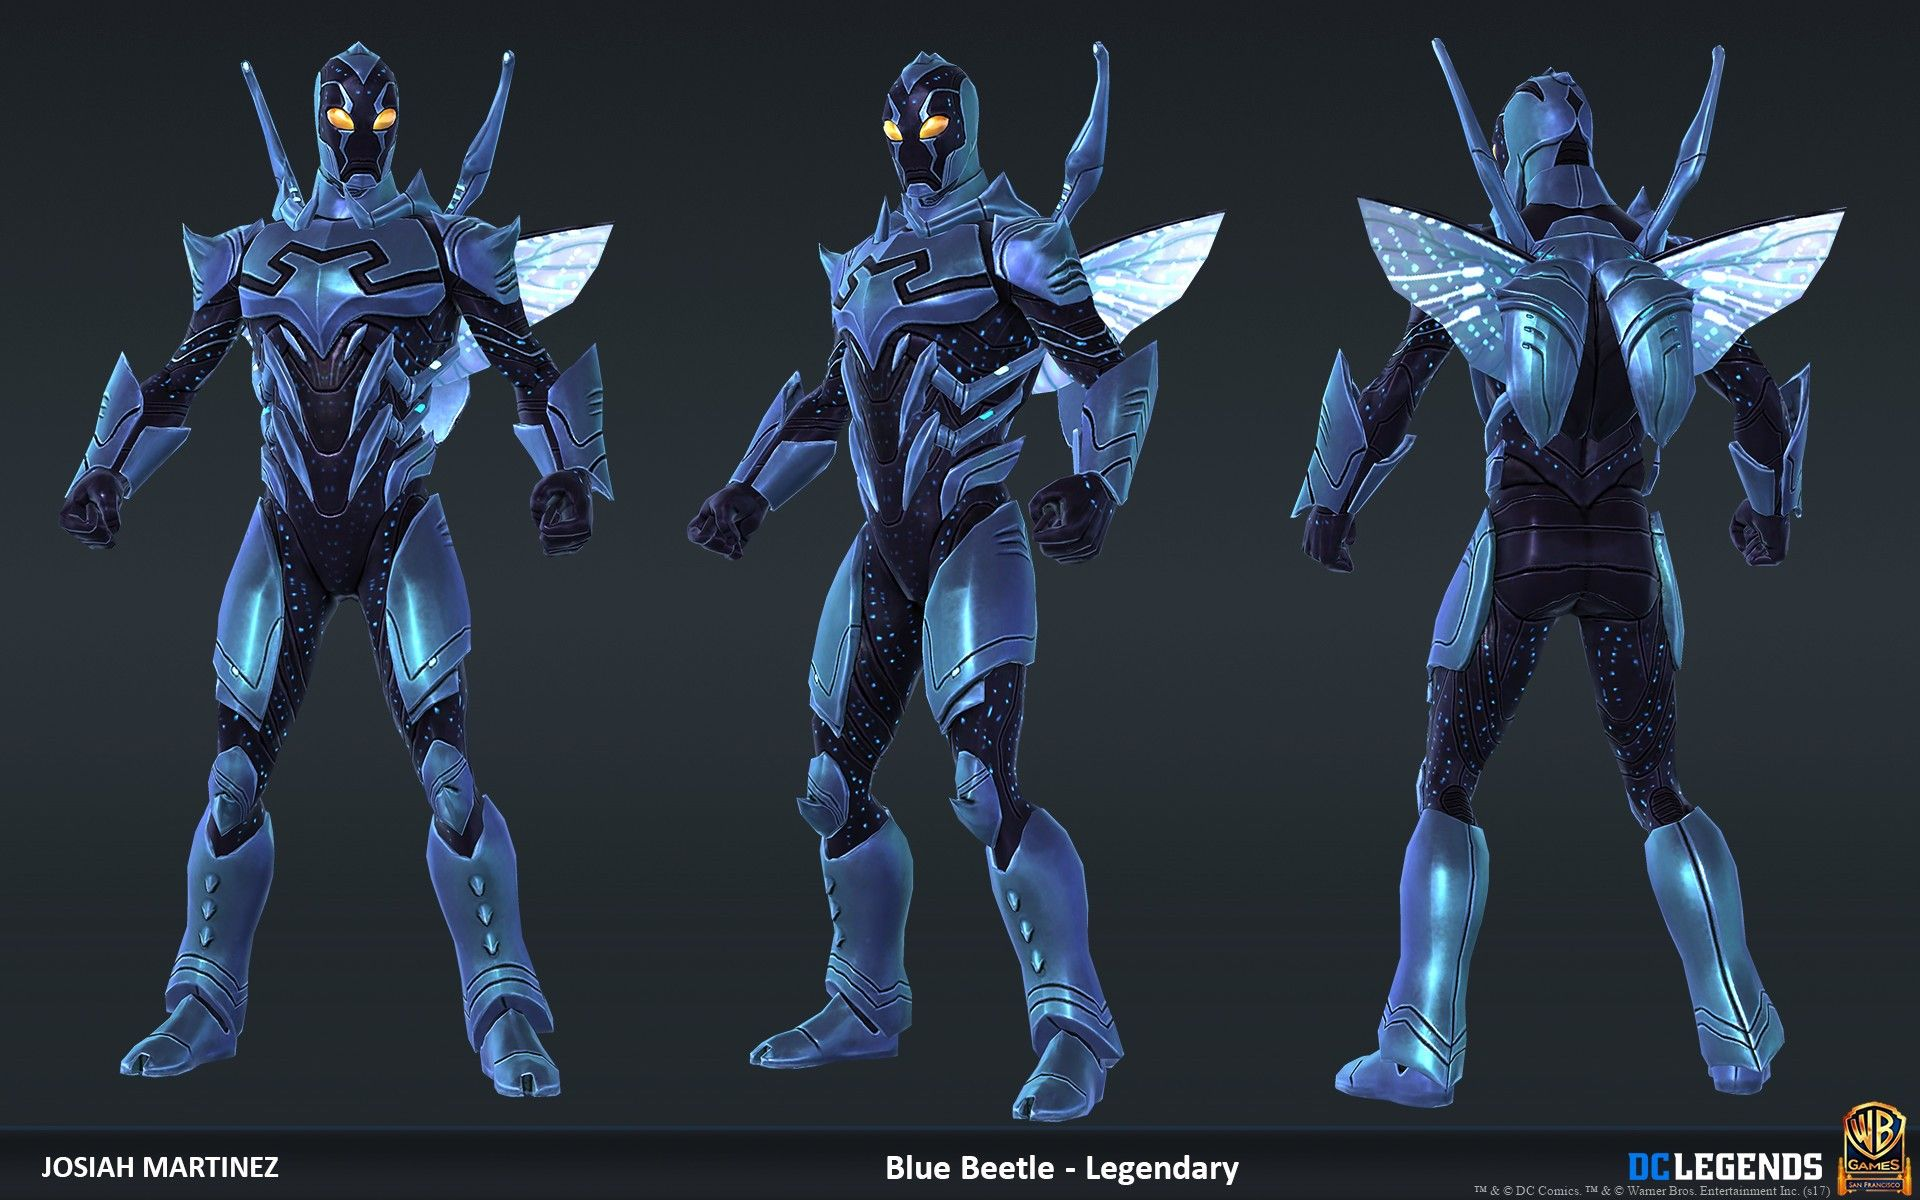 Pin by Mike M on cosplay Character art, Blue beetle